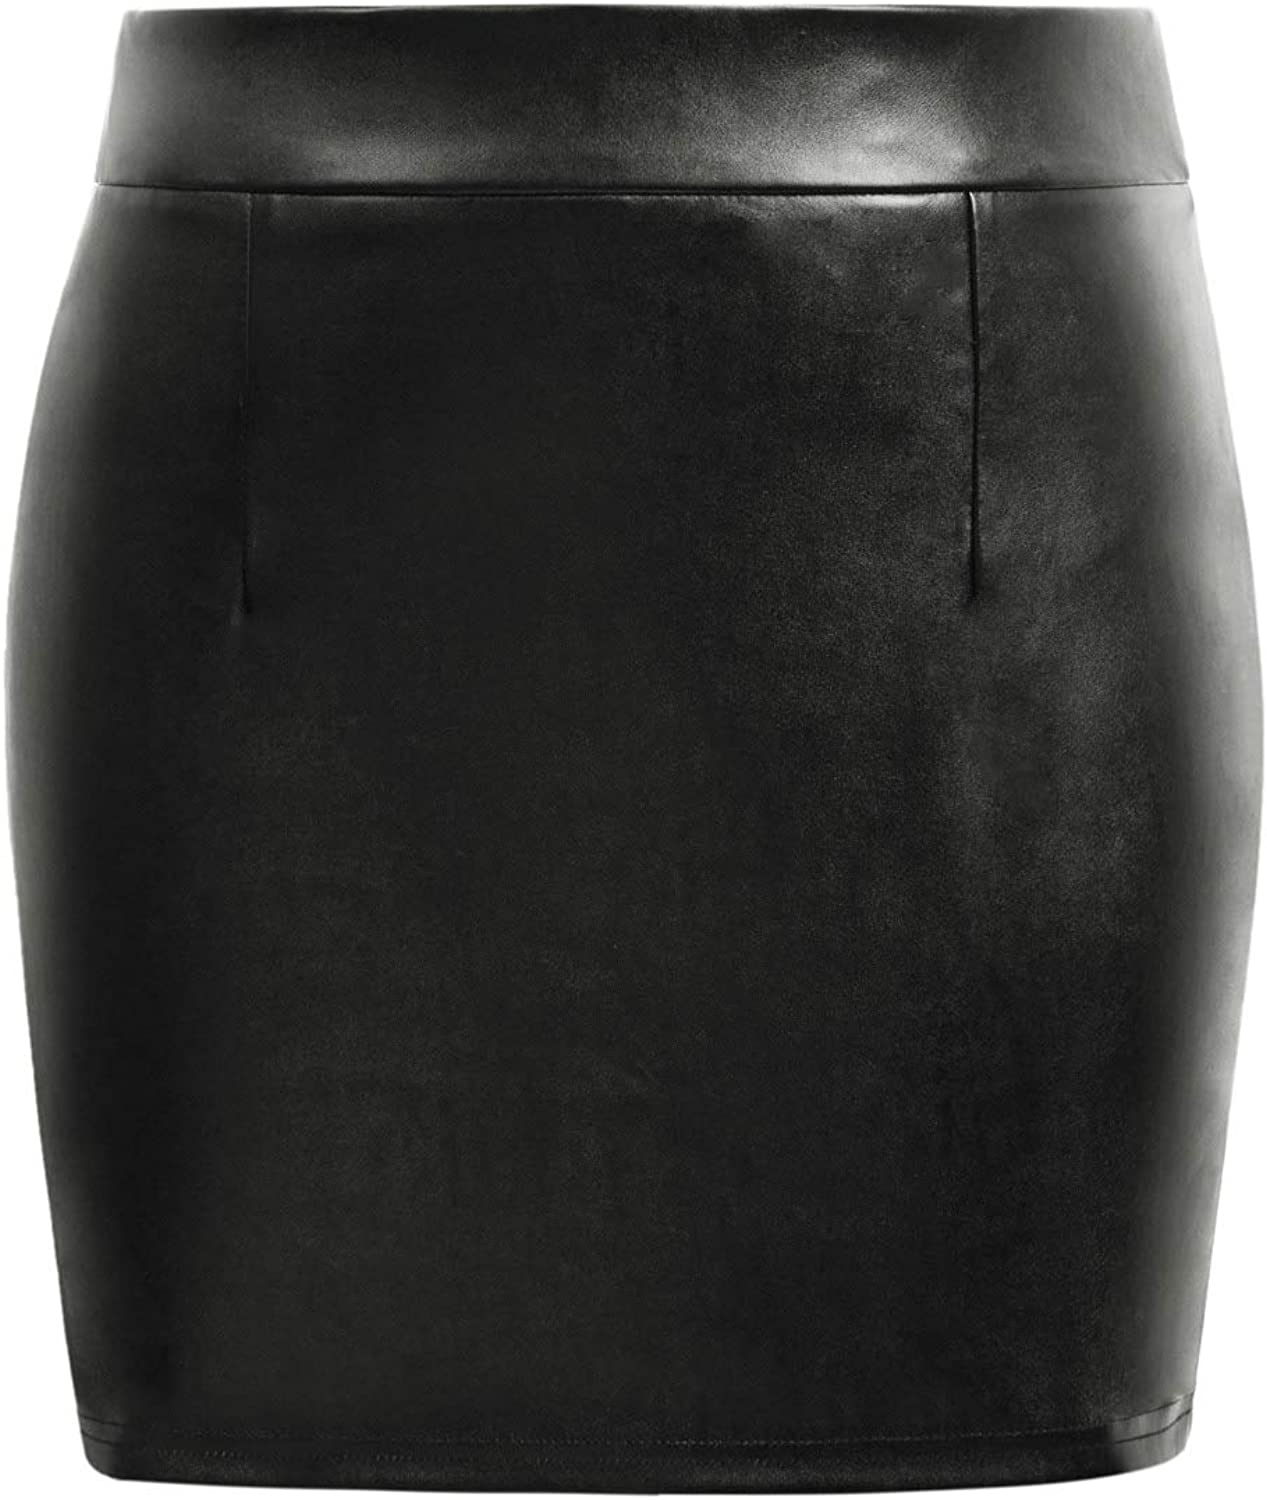 Kate Kasin Stretchy Shiny Metallic Mini Skirt for Women Nightout Wear